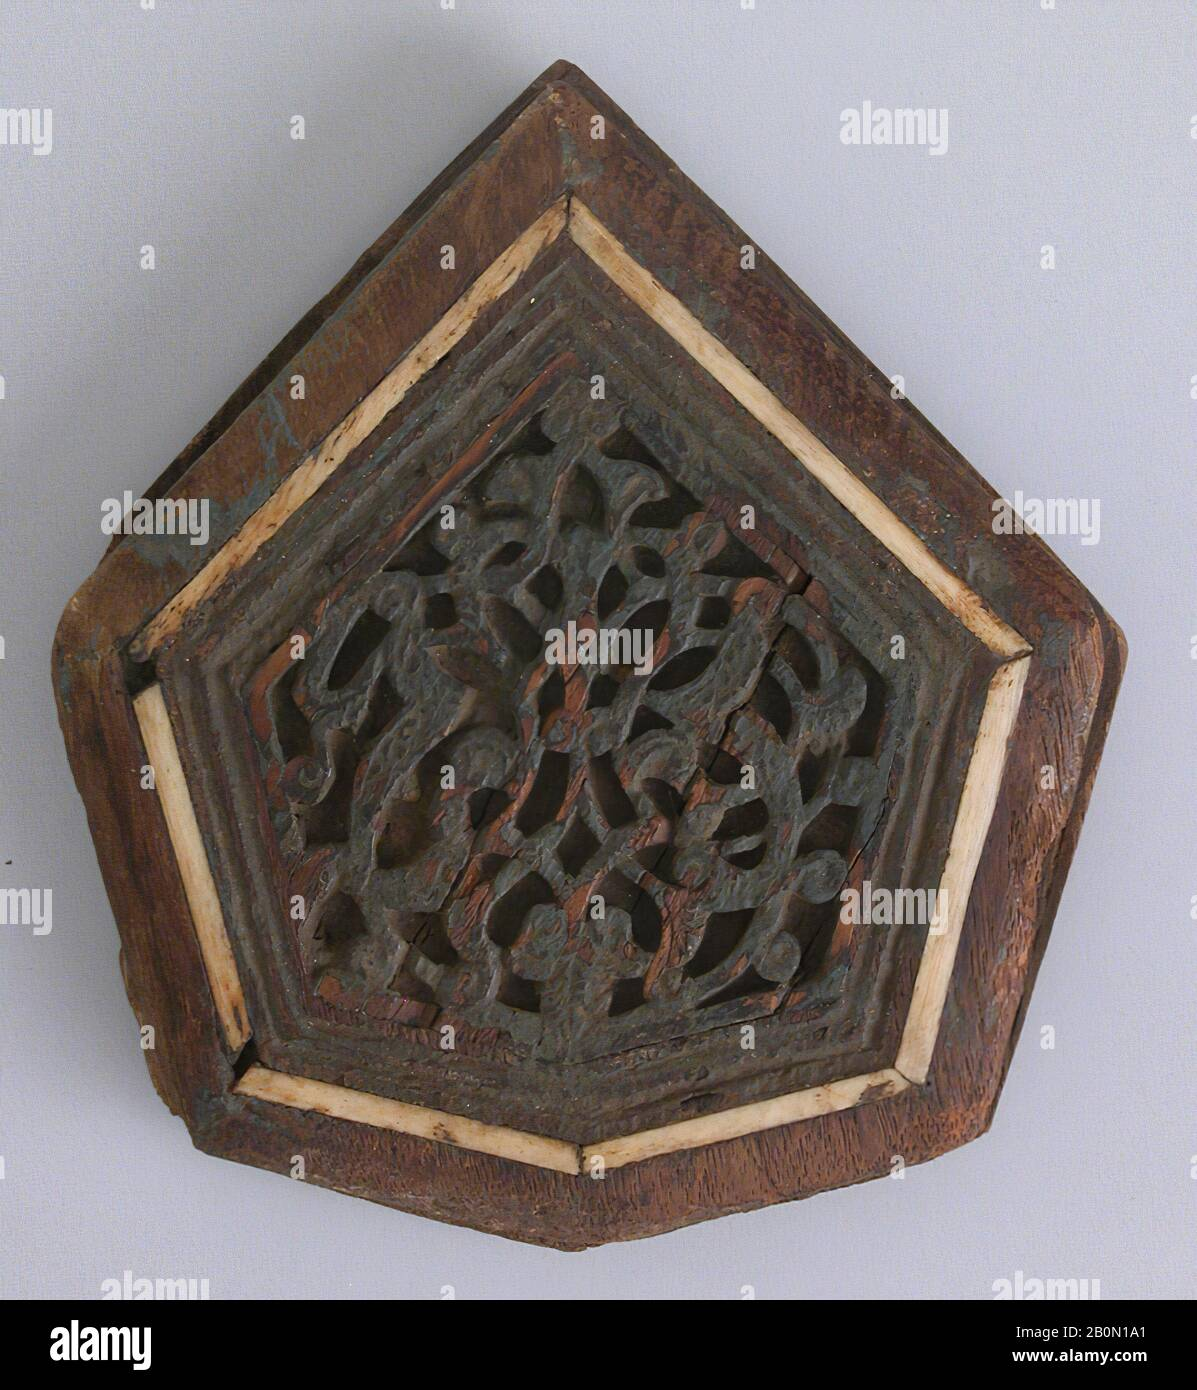 Panel 13th 14th Century Attributed To Egypt Cairo Wood Carved Inlaid With Ivory Or Bone Wood Stock Photo Alamy